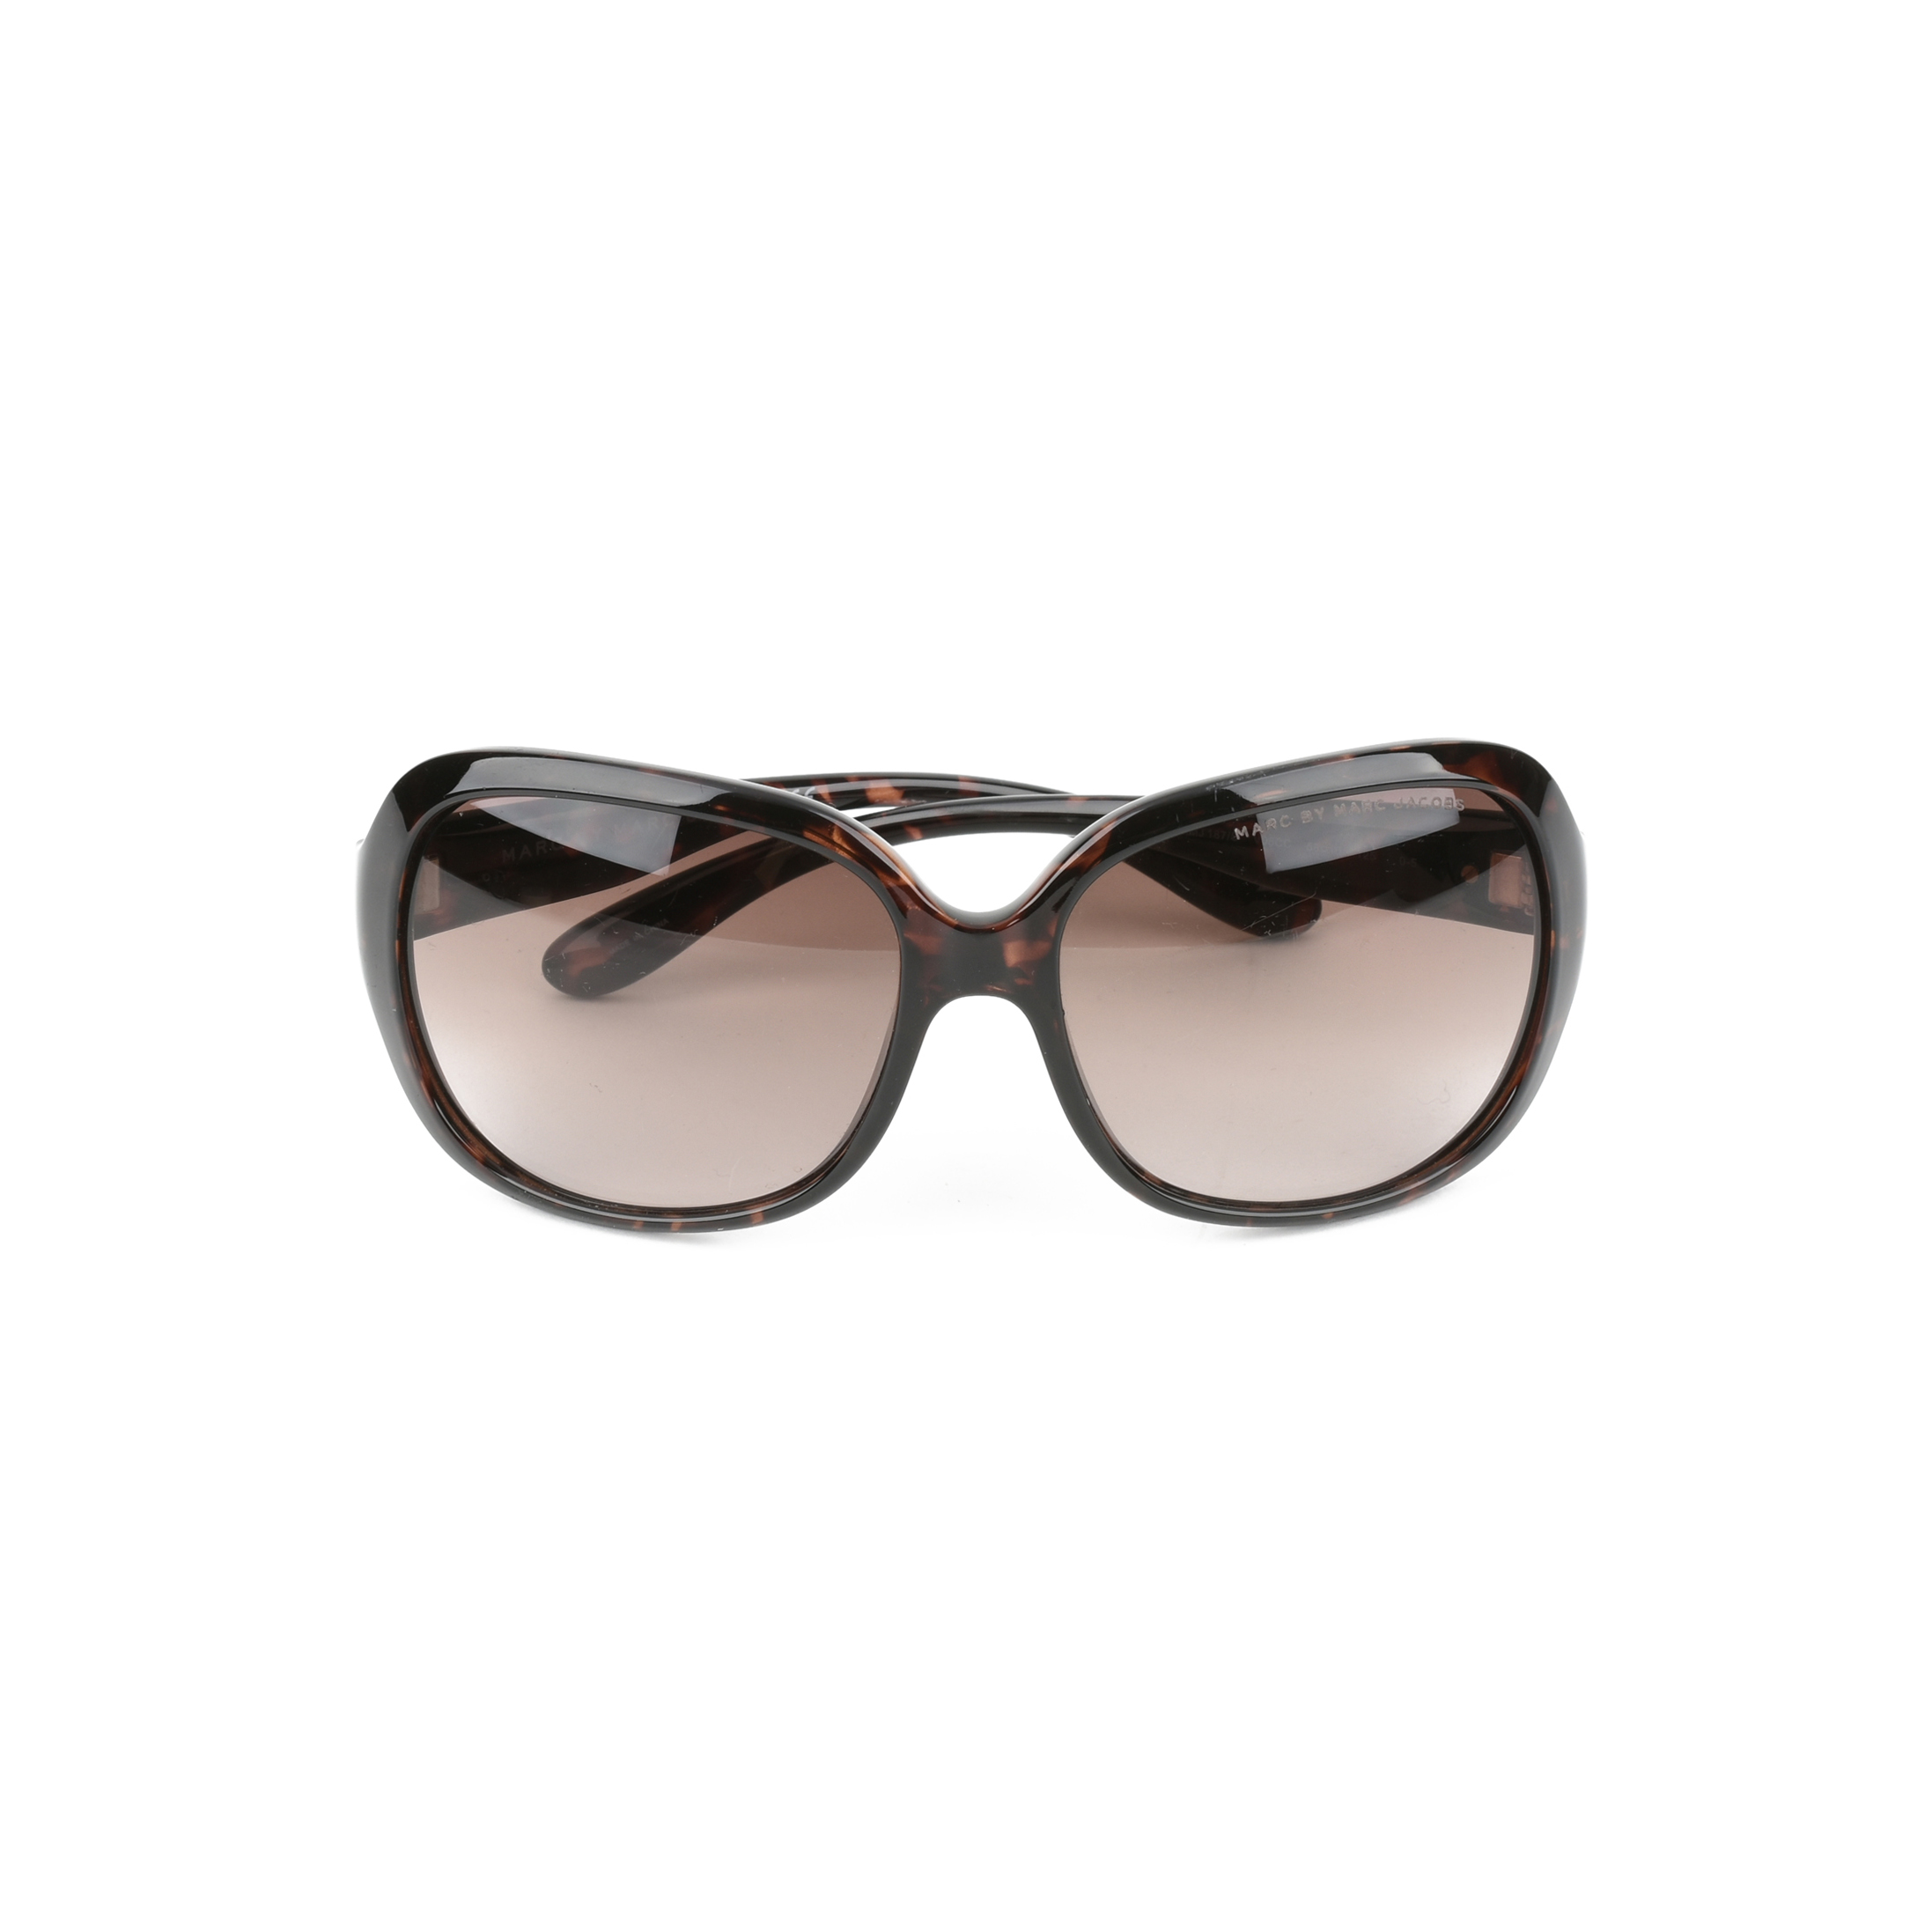 706c22d1a1a5 Authentic Second Hand Marc by Marc Jacobs Round Frame Tortoise Shell  Sunglasses (PSS-153-00010) - THE FIFTH COLLECTION